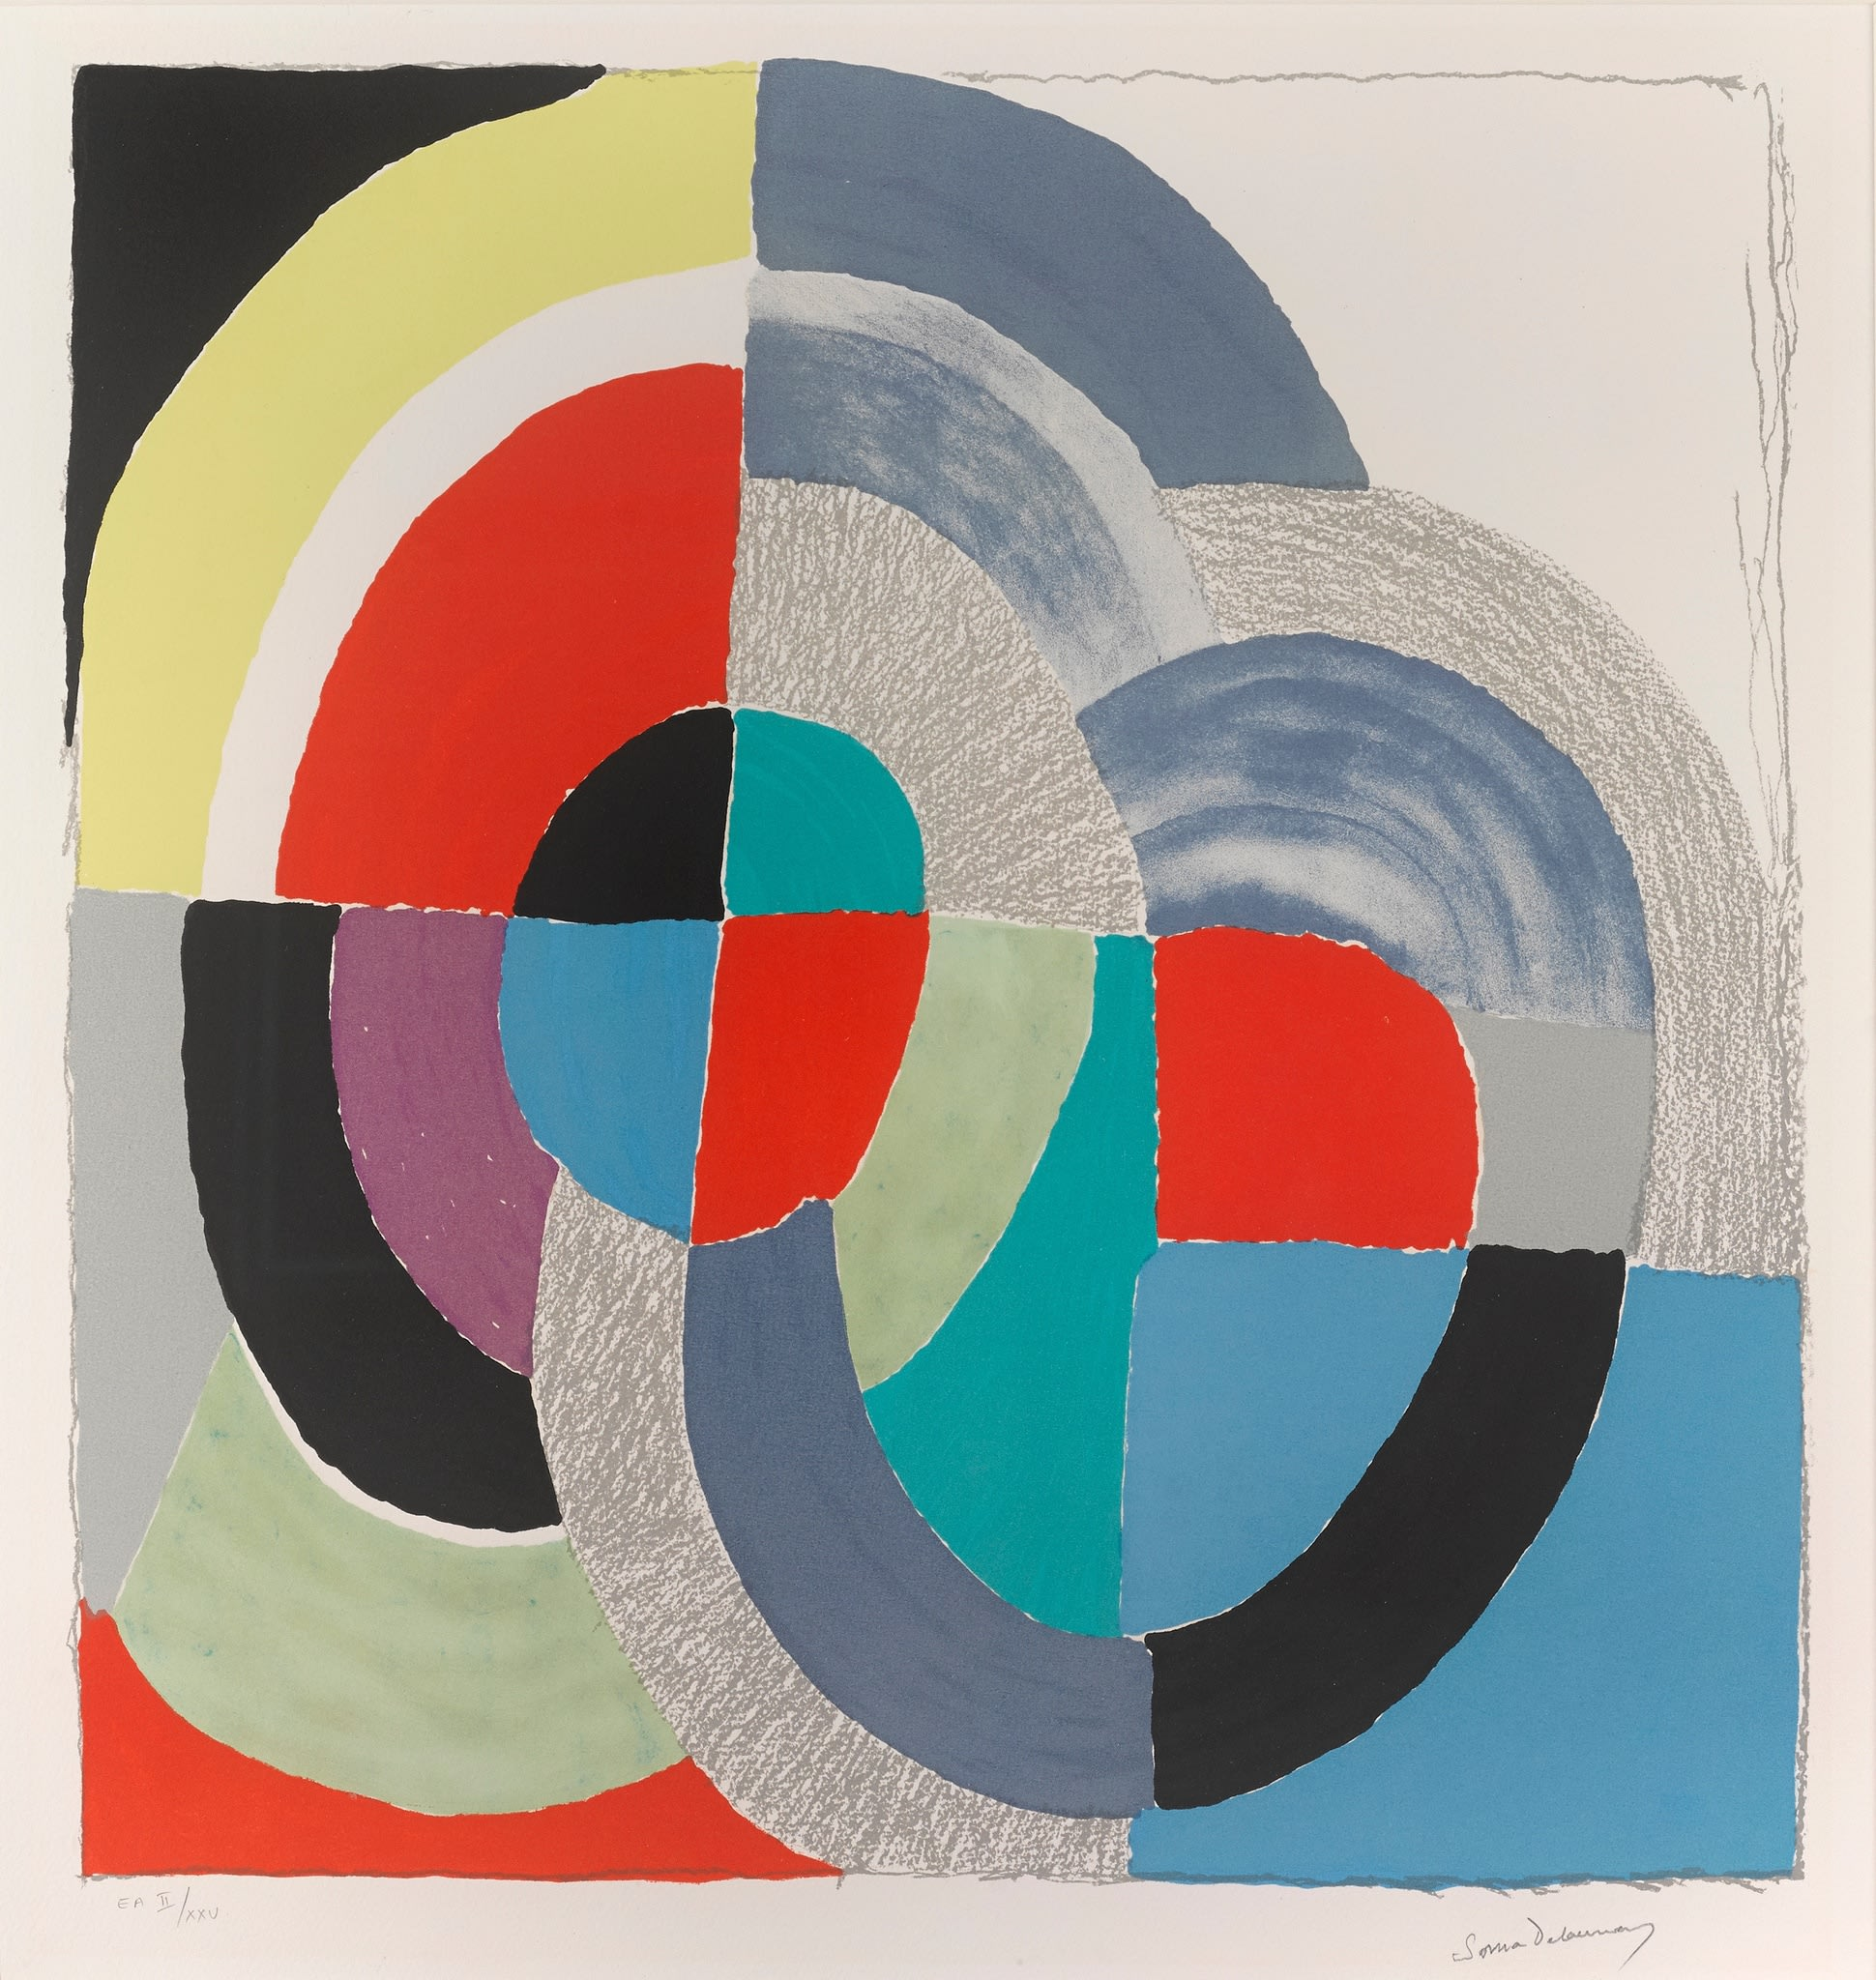 """<span class=""""link fancybox-details-link""""><a href=""""/artists/39-sonia-delaunay/works/189-sonia-delaunay-russian-easter-1970/"""">View Detail Page</a></span><div class=""""artist""""><strong>Sonia Delaunay</strong></div> 1885 - 1979 <div class=""""title""""><em>Russian Easter</em>, 1970</div> <div class=""""signed_and_dated"""">Signed in pencil lower right</div> <div class=""""medium"""">Coloured lithograph</div> <div class=""""dimensions"""">24 3/4 x 31 1/8 in<br /> 63 x 79 cm</div> <div class=""""edition_details"""">E.A II/XXV (epreuve d'artist/artist's proof)</div>"""